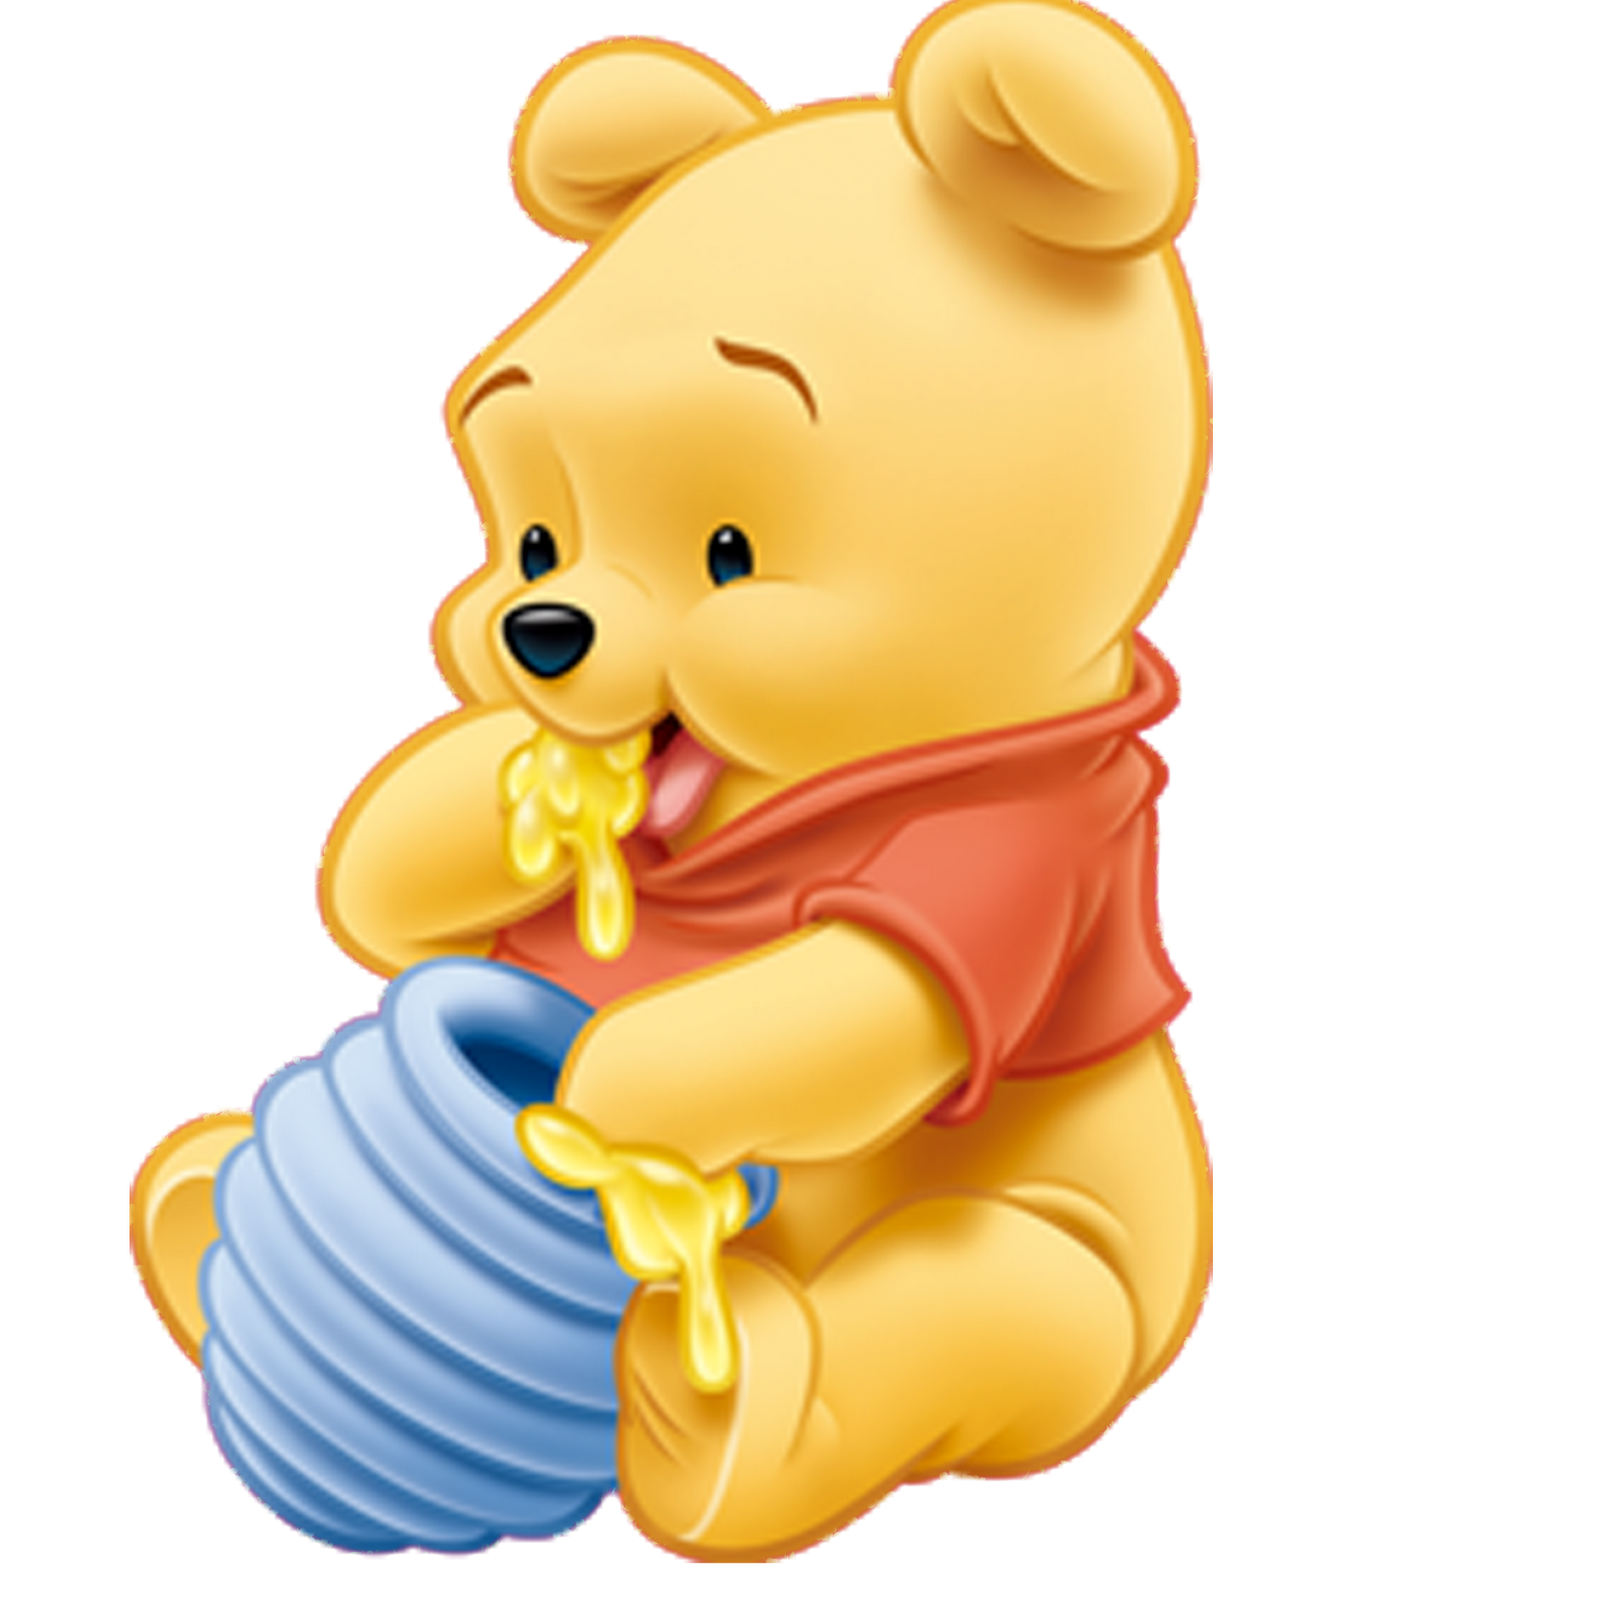 Winnie the Pooh Pictures: m